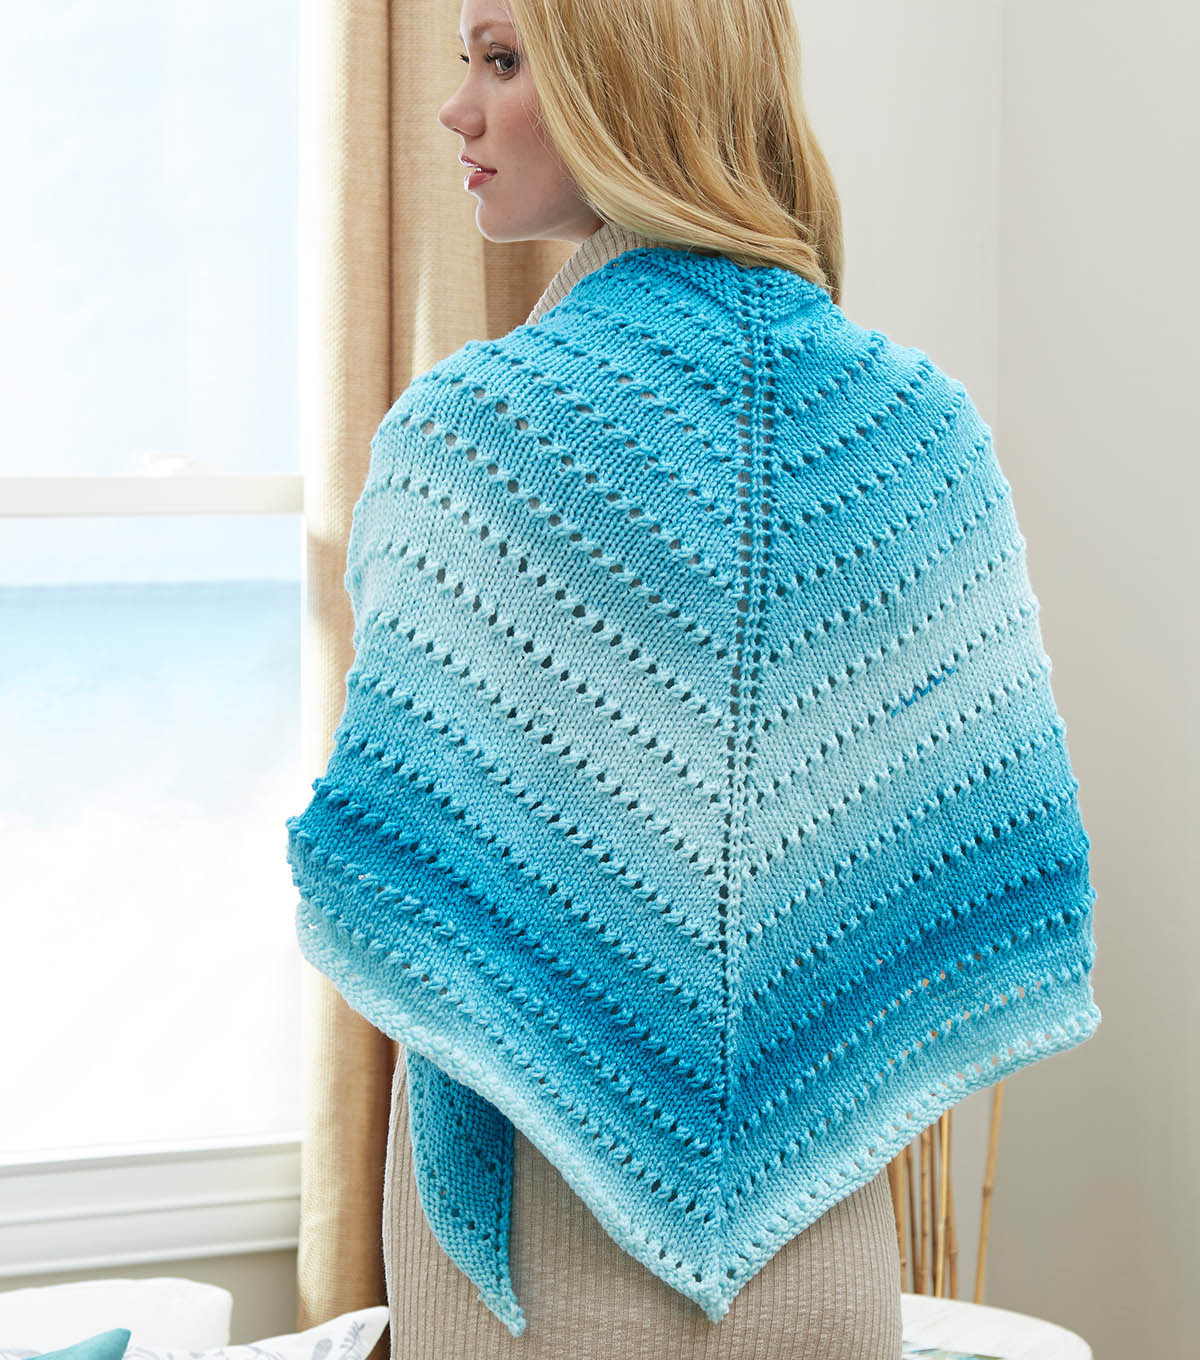 How To Knit A Simple Lace Triangle Shawl ⋆ Knitting Bee